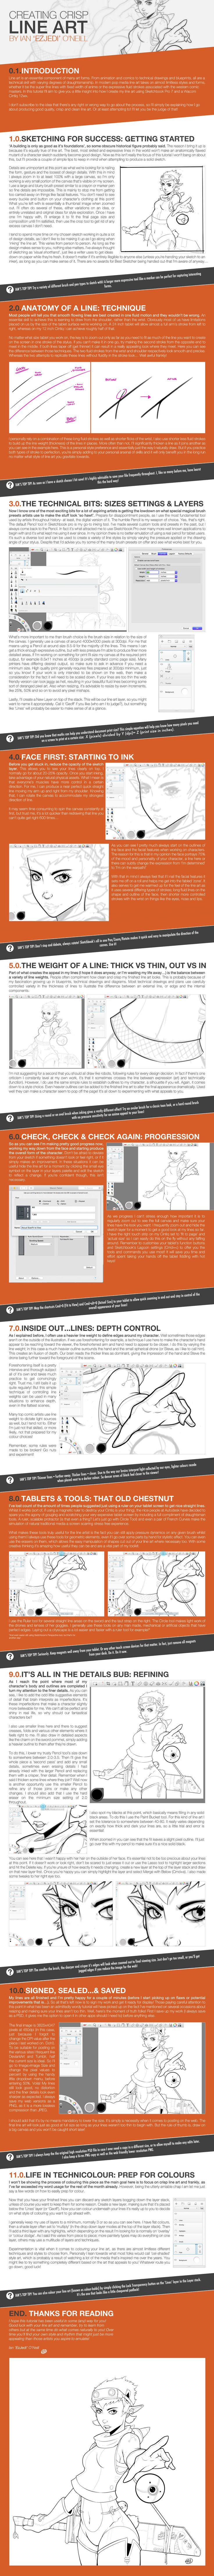 Tutorial: Creating Crisp Line Art by EzJedi.deviantart.com on @DeviantArt